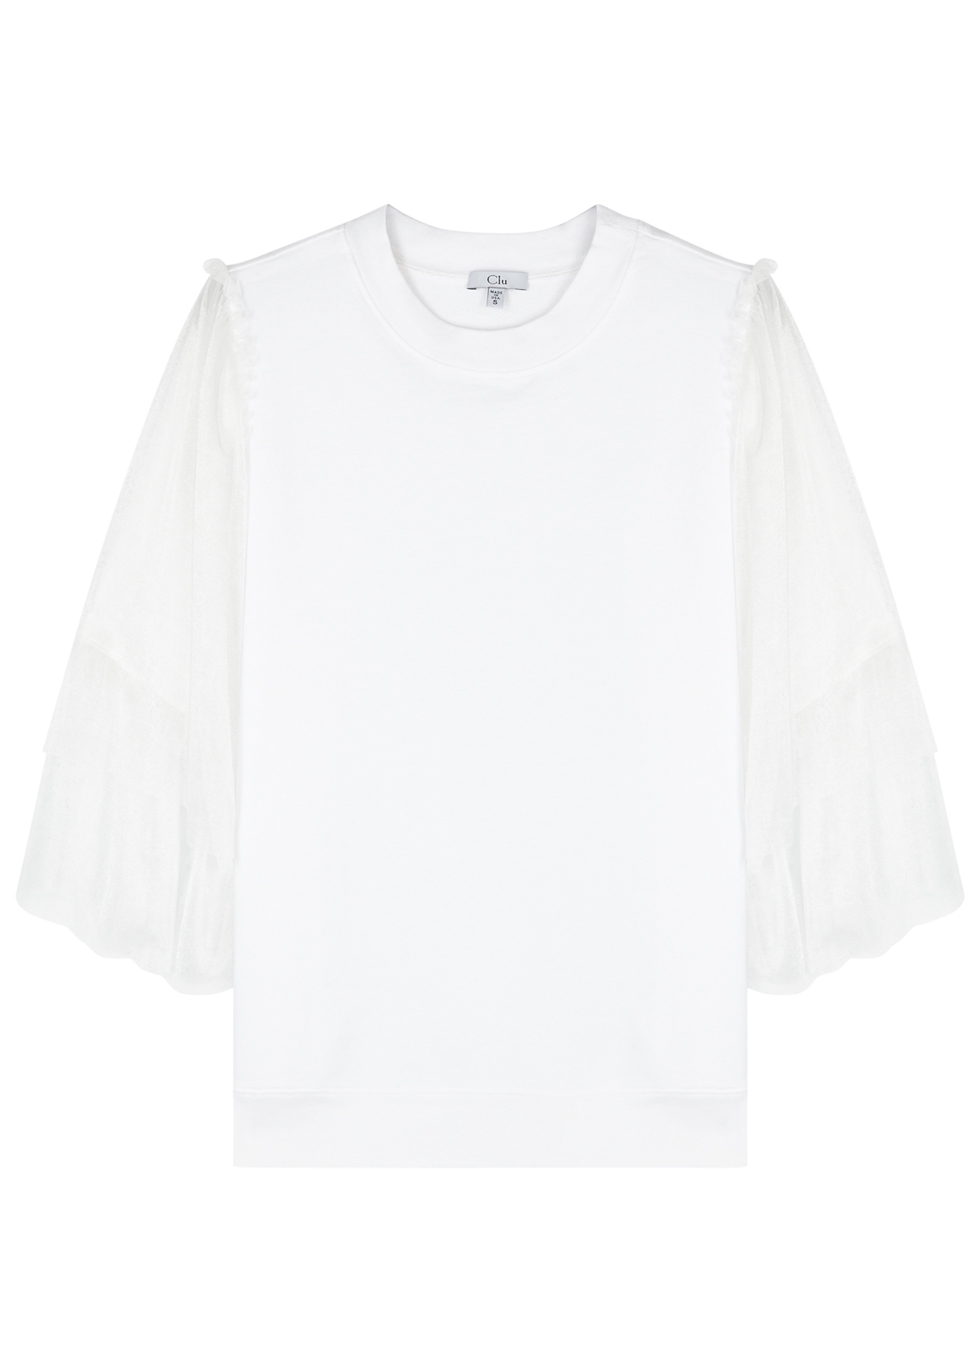 CLU WHITE MESH AND COTTON JERSEY TOP